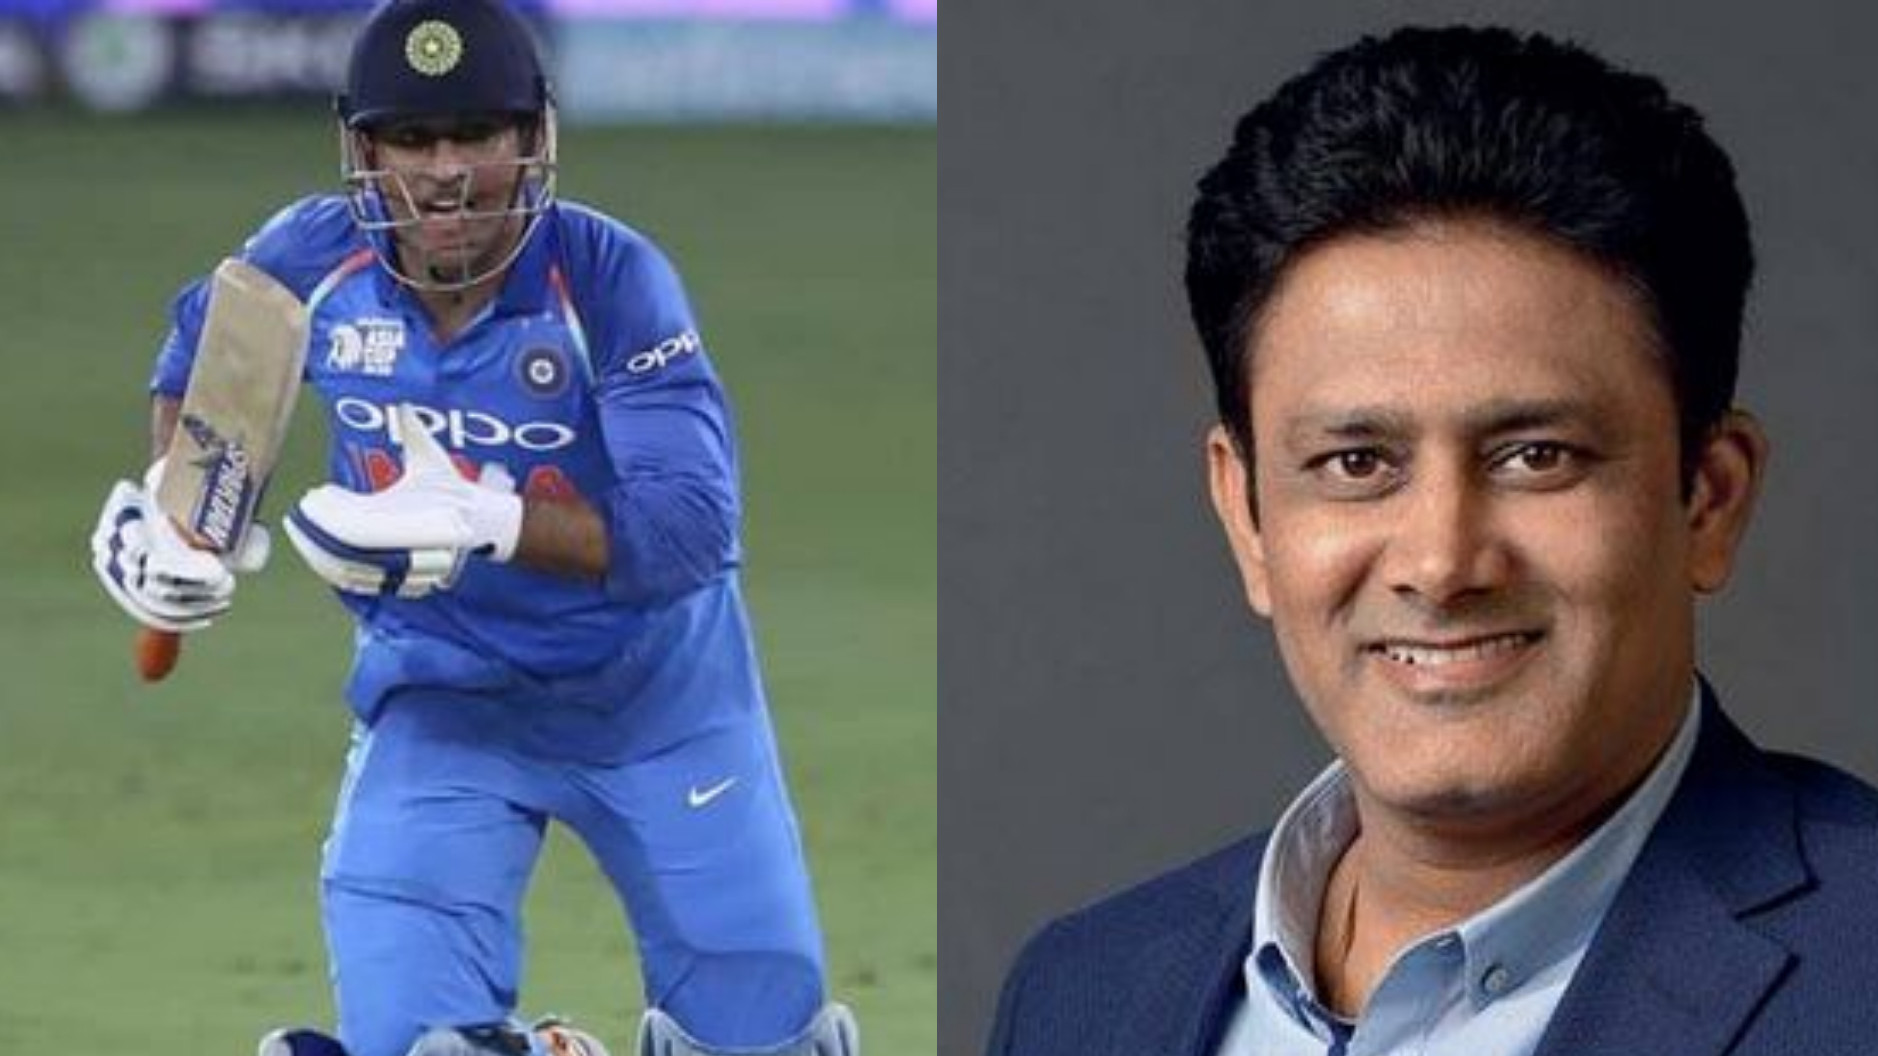 AUS v IND 2018-19: Anil Kumble says MS Dhoni needs to keep playing games to get his confidence back